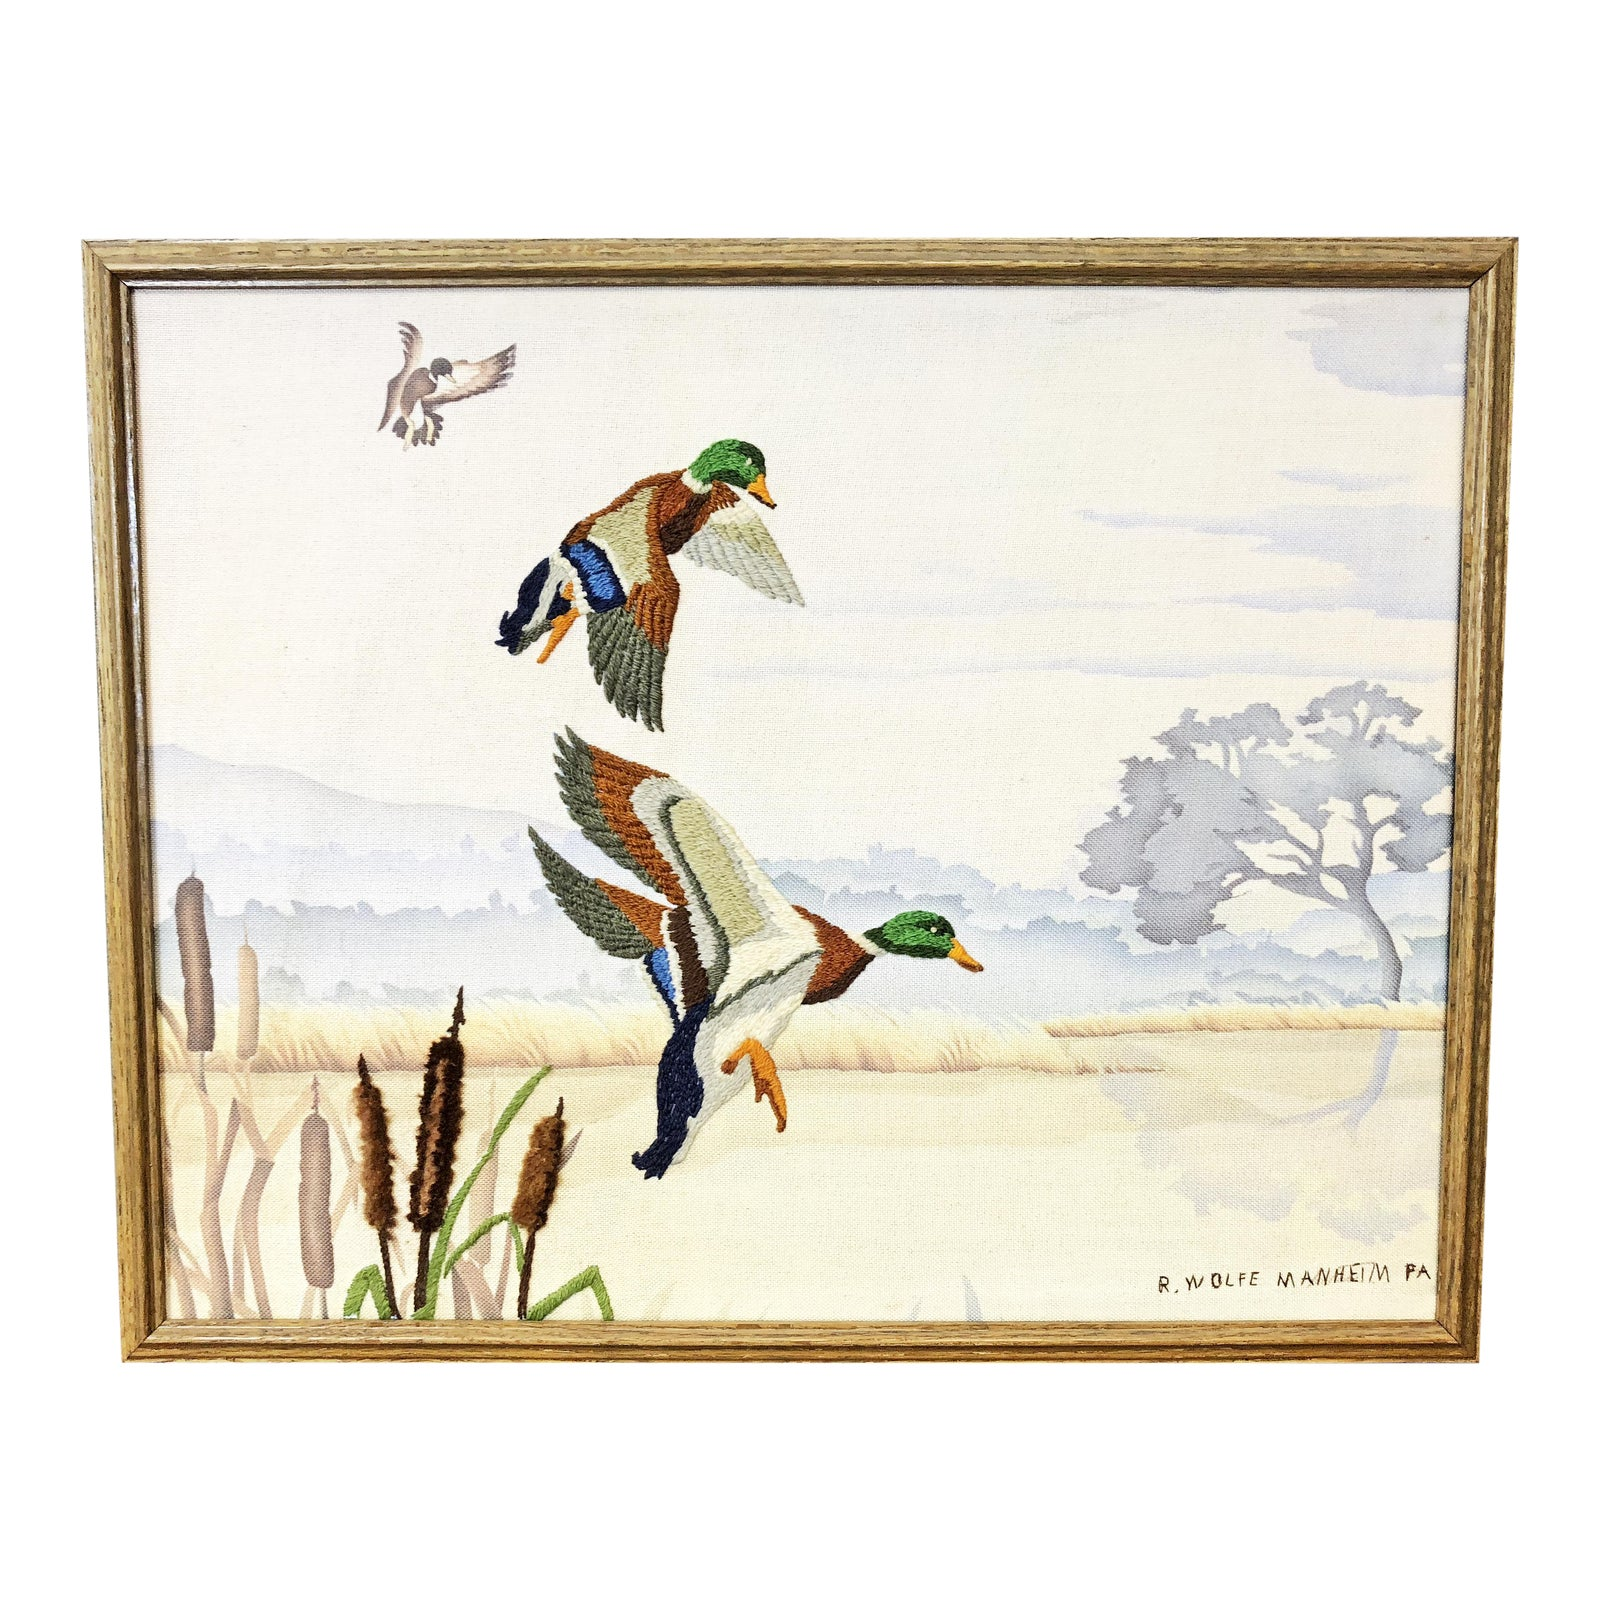 Vintage Duck Hunting Framed Needlepoint - Great for Cabin Decor ...